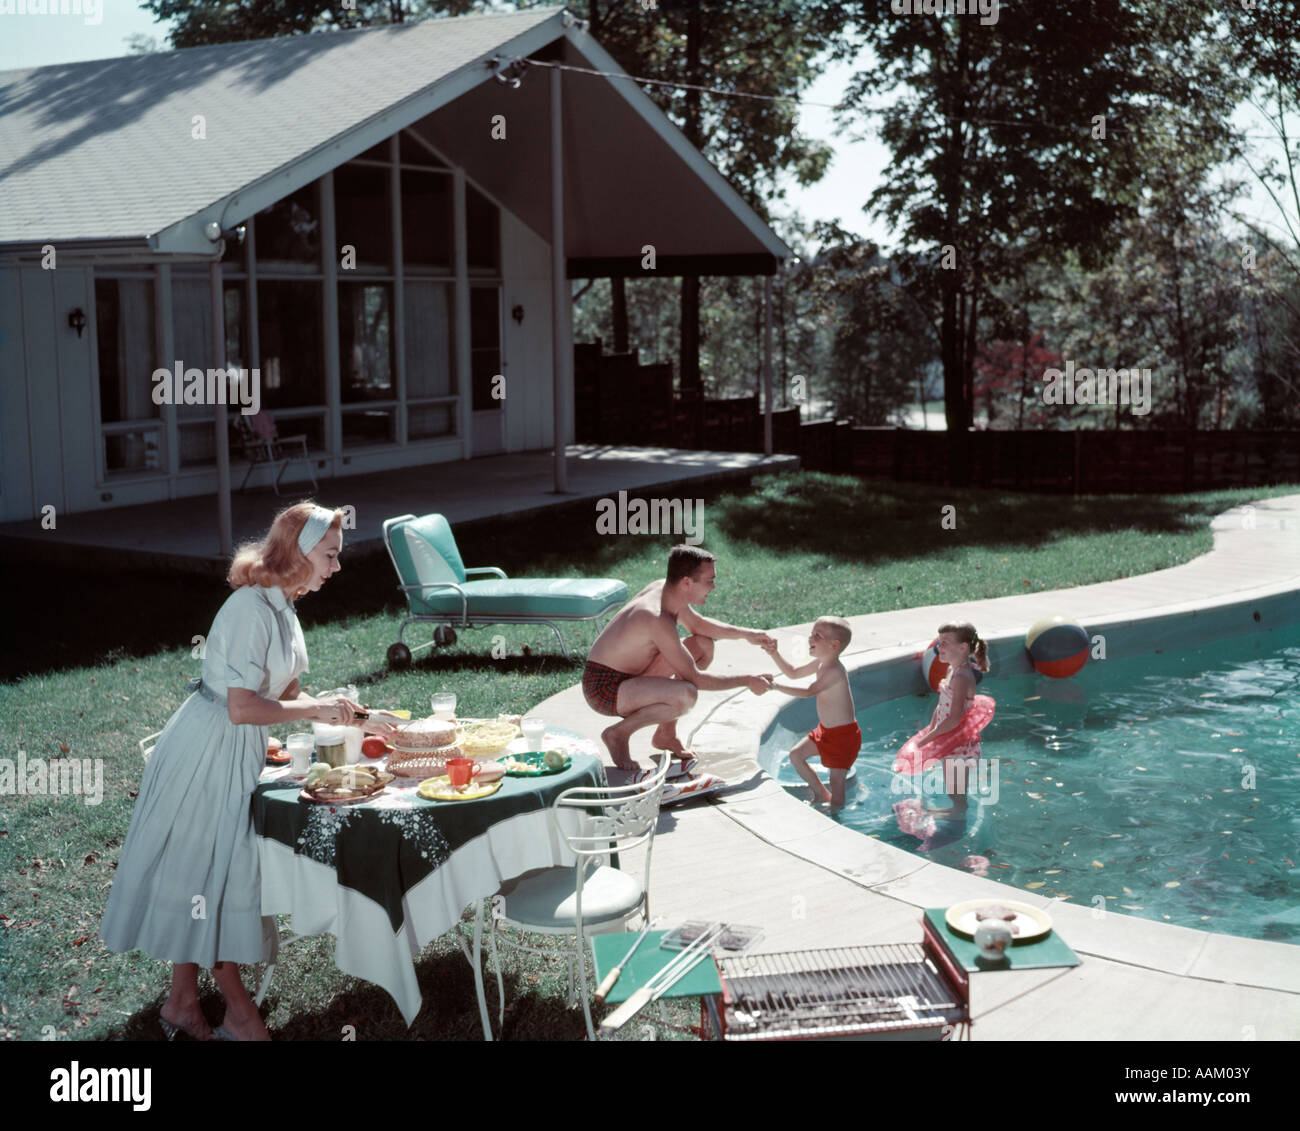 1950s FAMILY OF 4 BACKYARD SWIMMING POOL HOUSE MOM SERVING